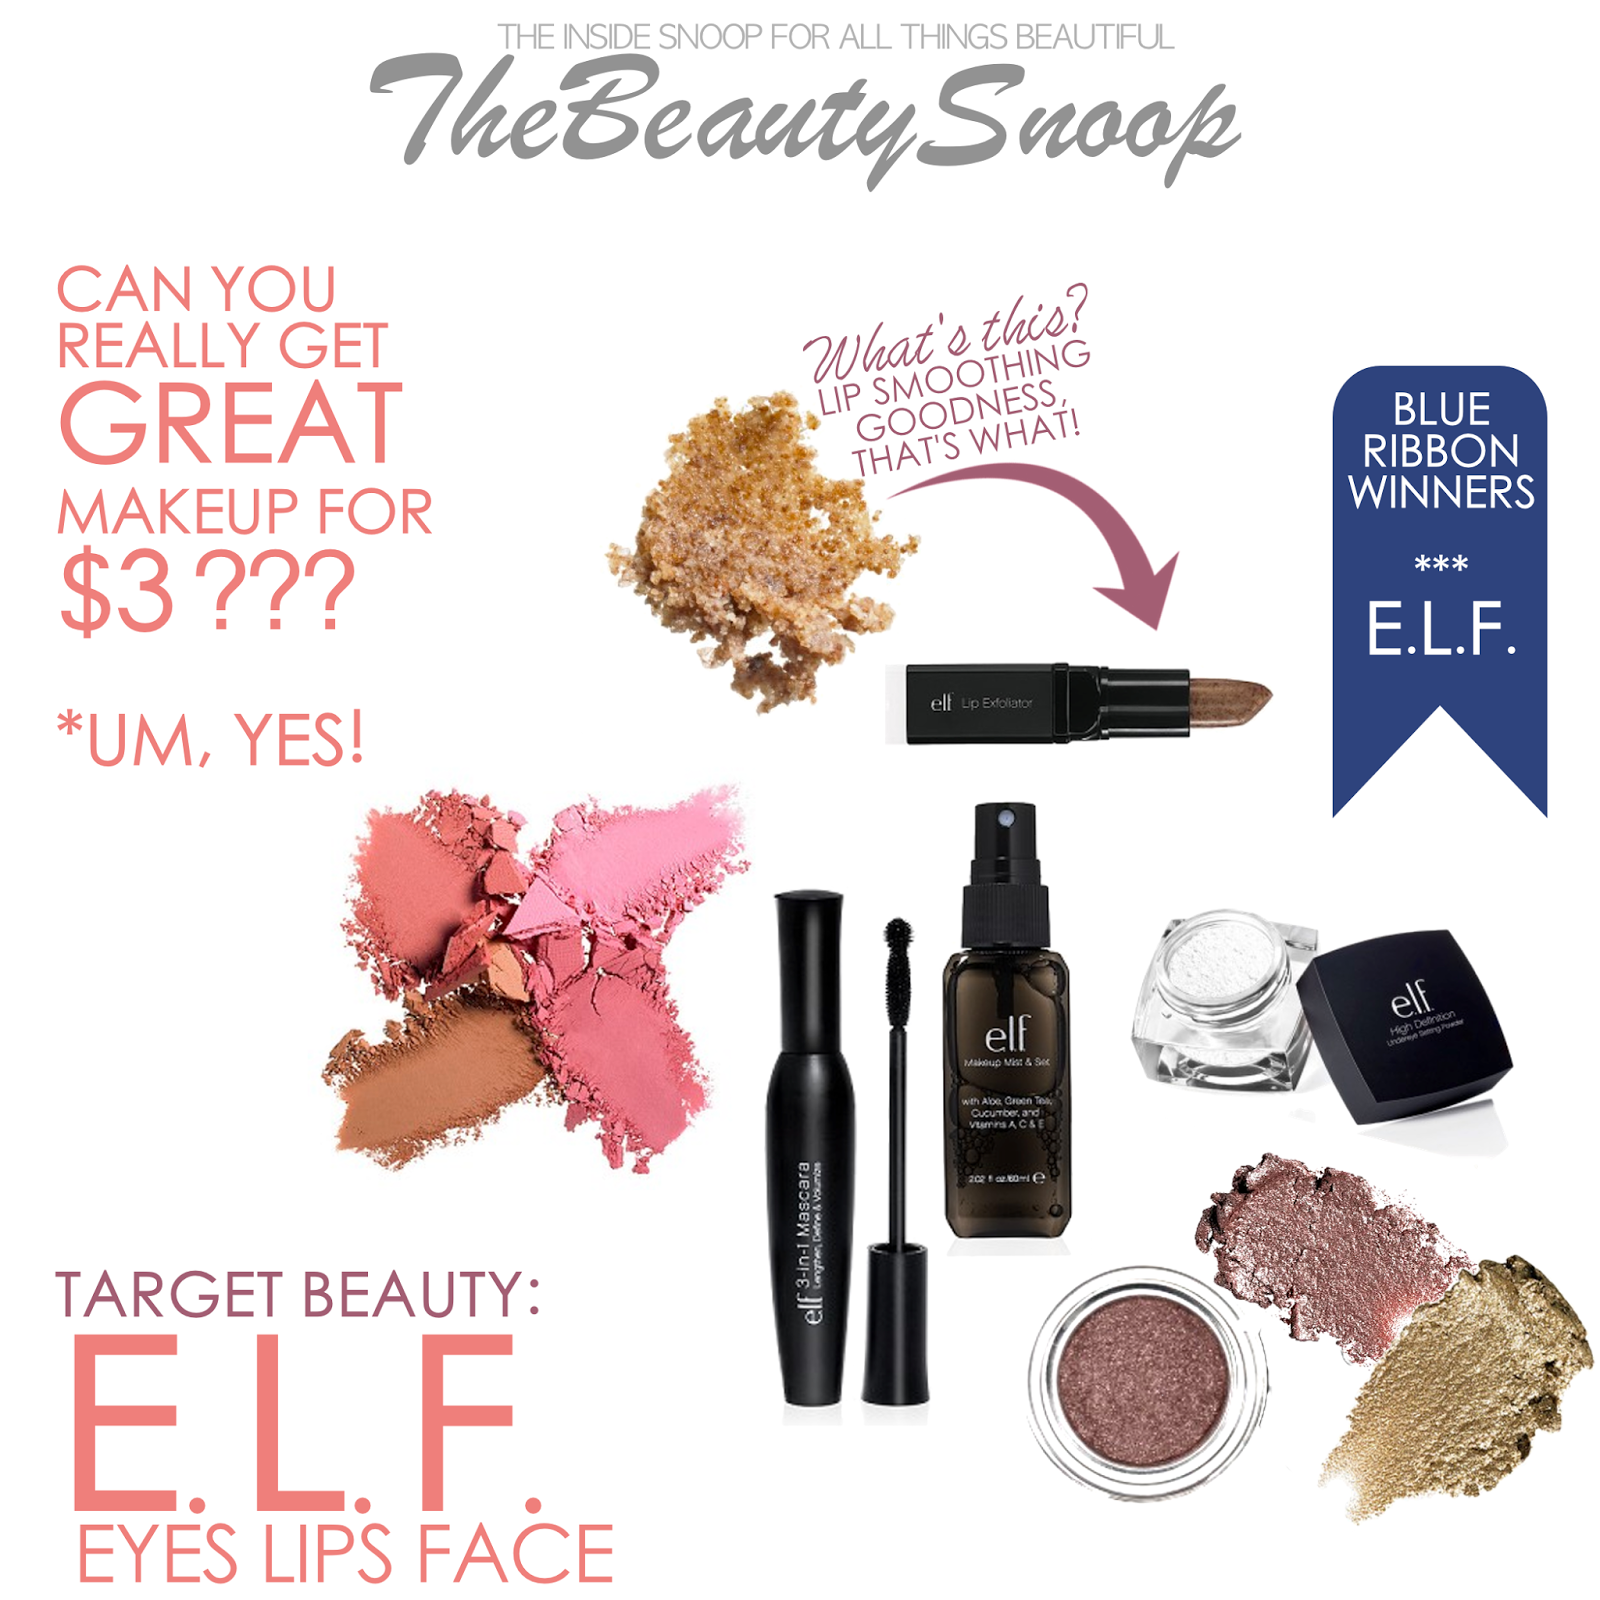 TARGET BEAUTY THE BEST OF E.L.F. COSMETICS Elf makeup